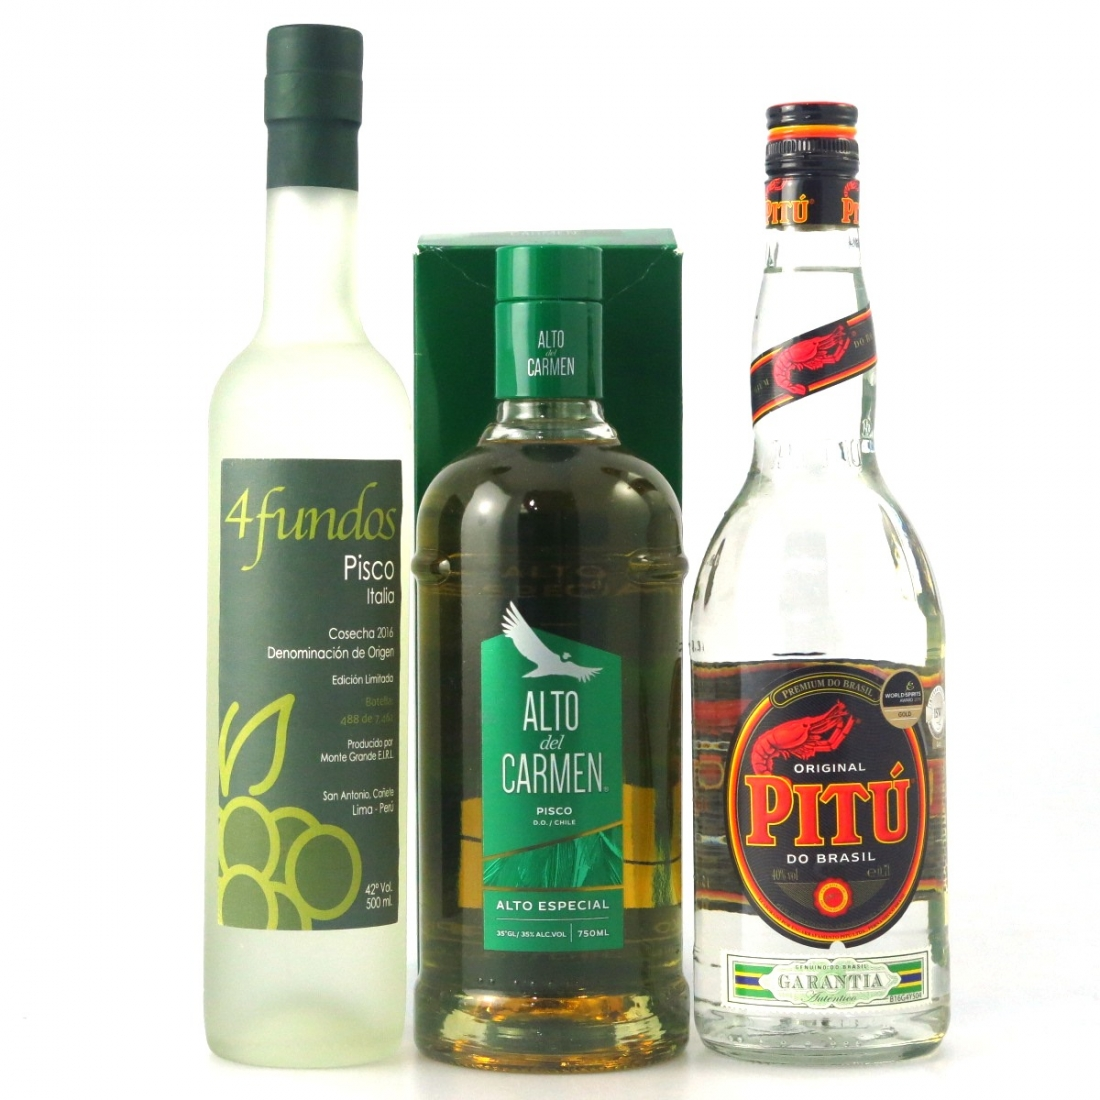 South American Pitu / Pisco Selection x 3